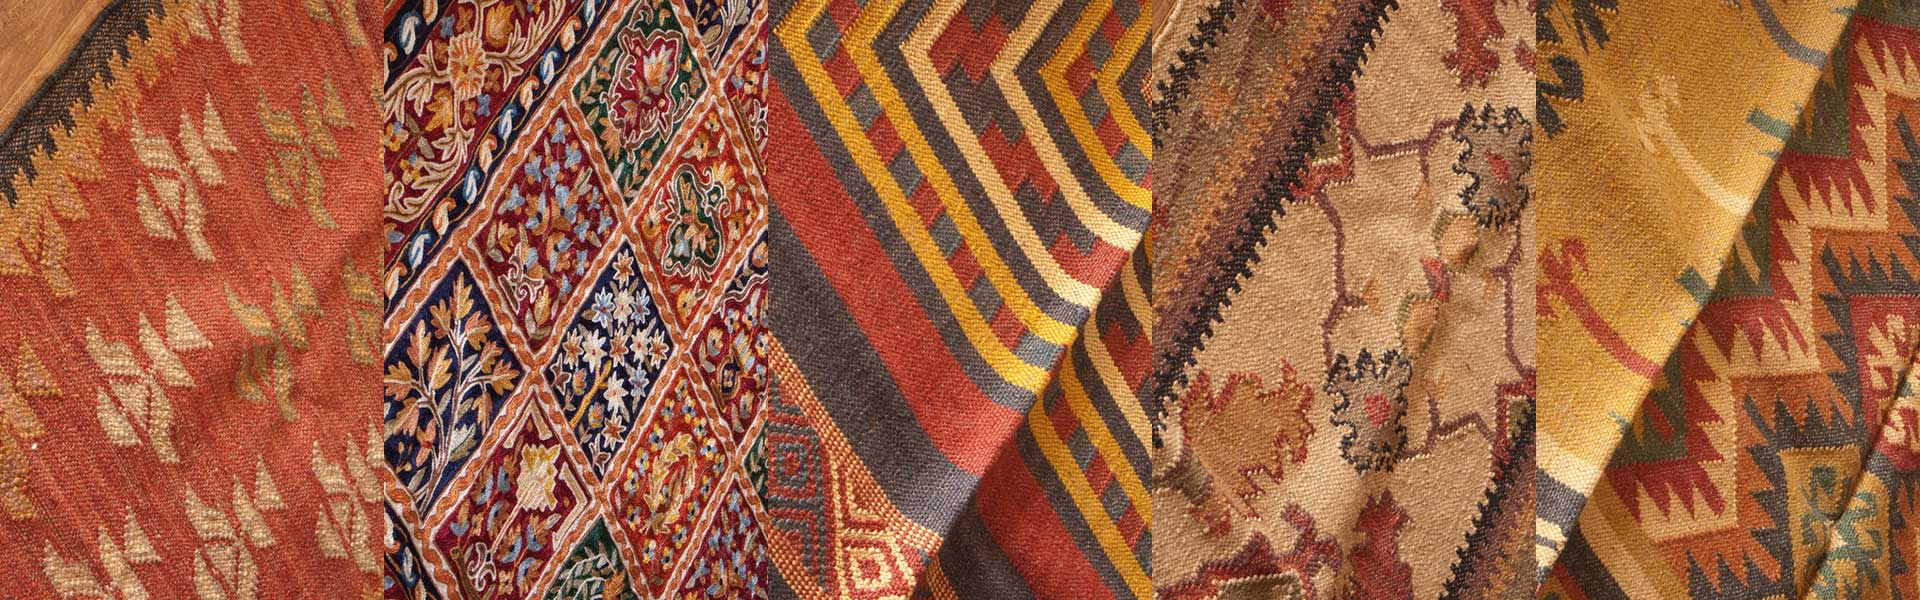 Kilims and Dhurries